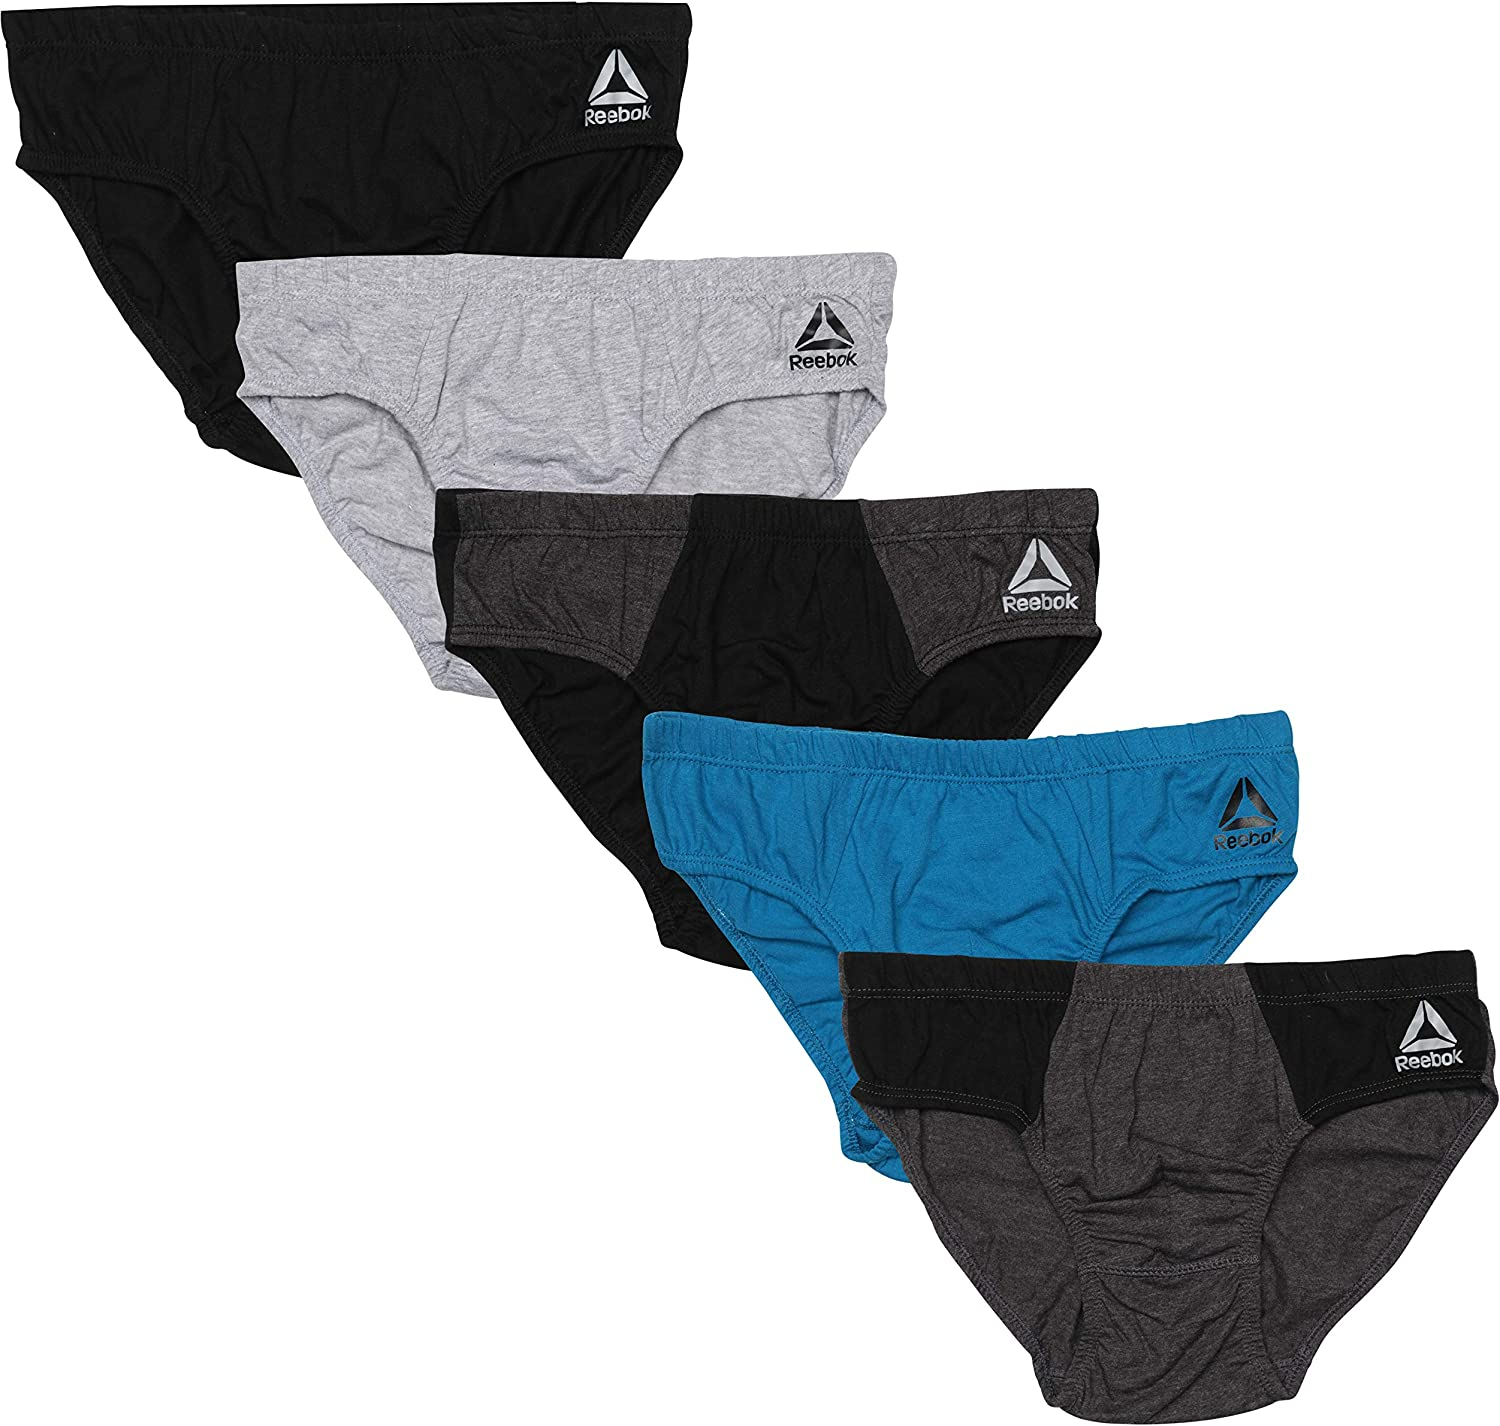 Reebok Men's Low Rise Underwear Briefs (5 Pack)